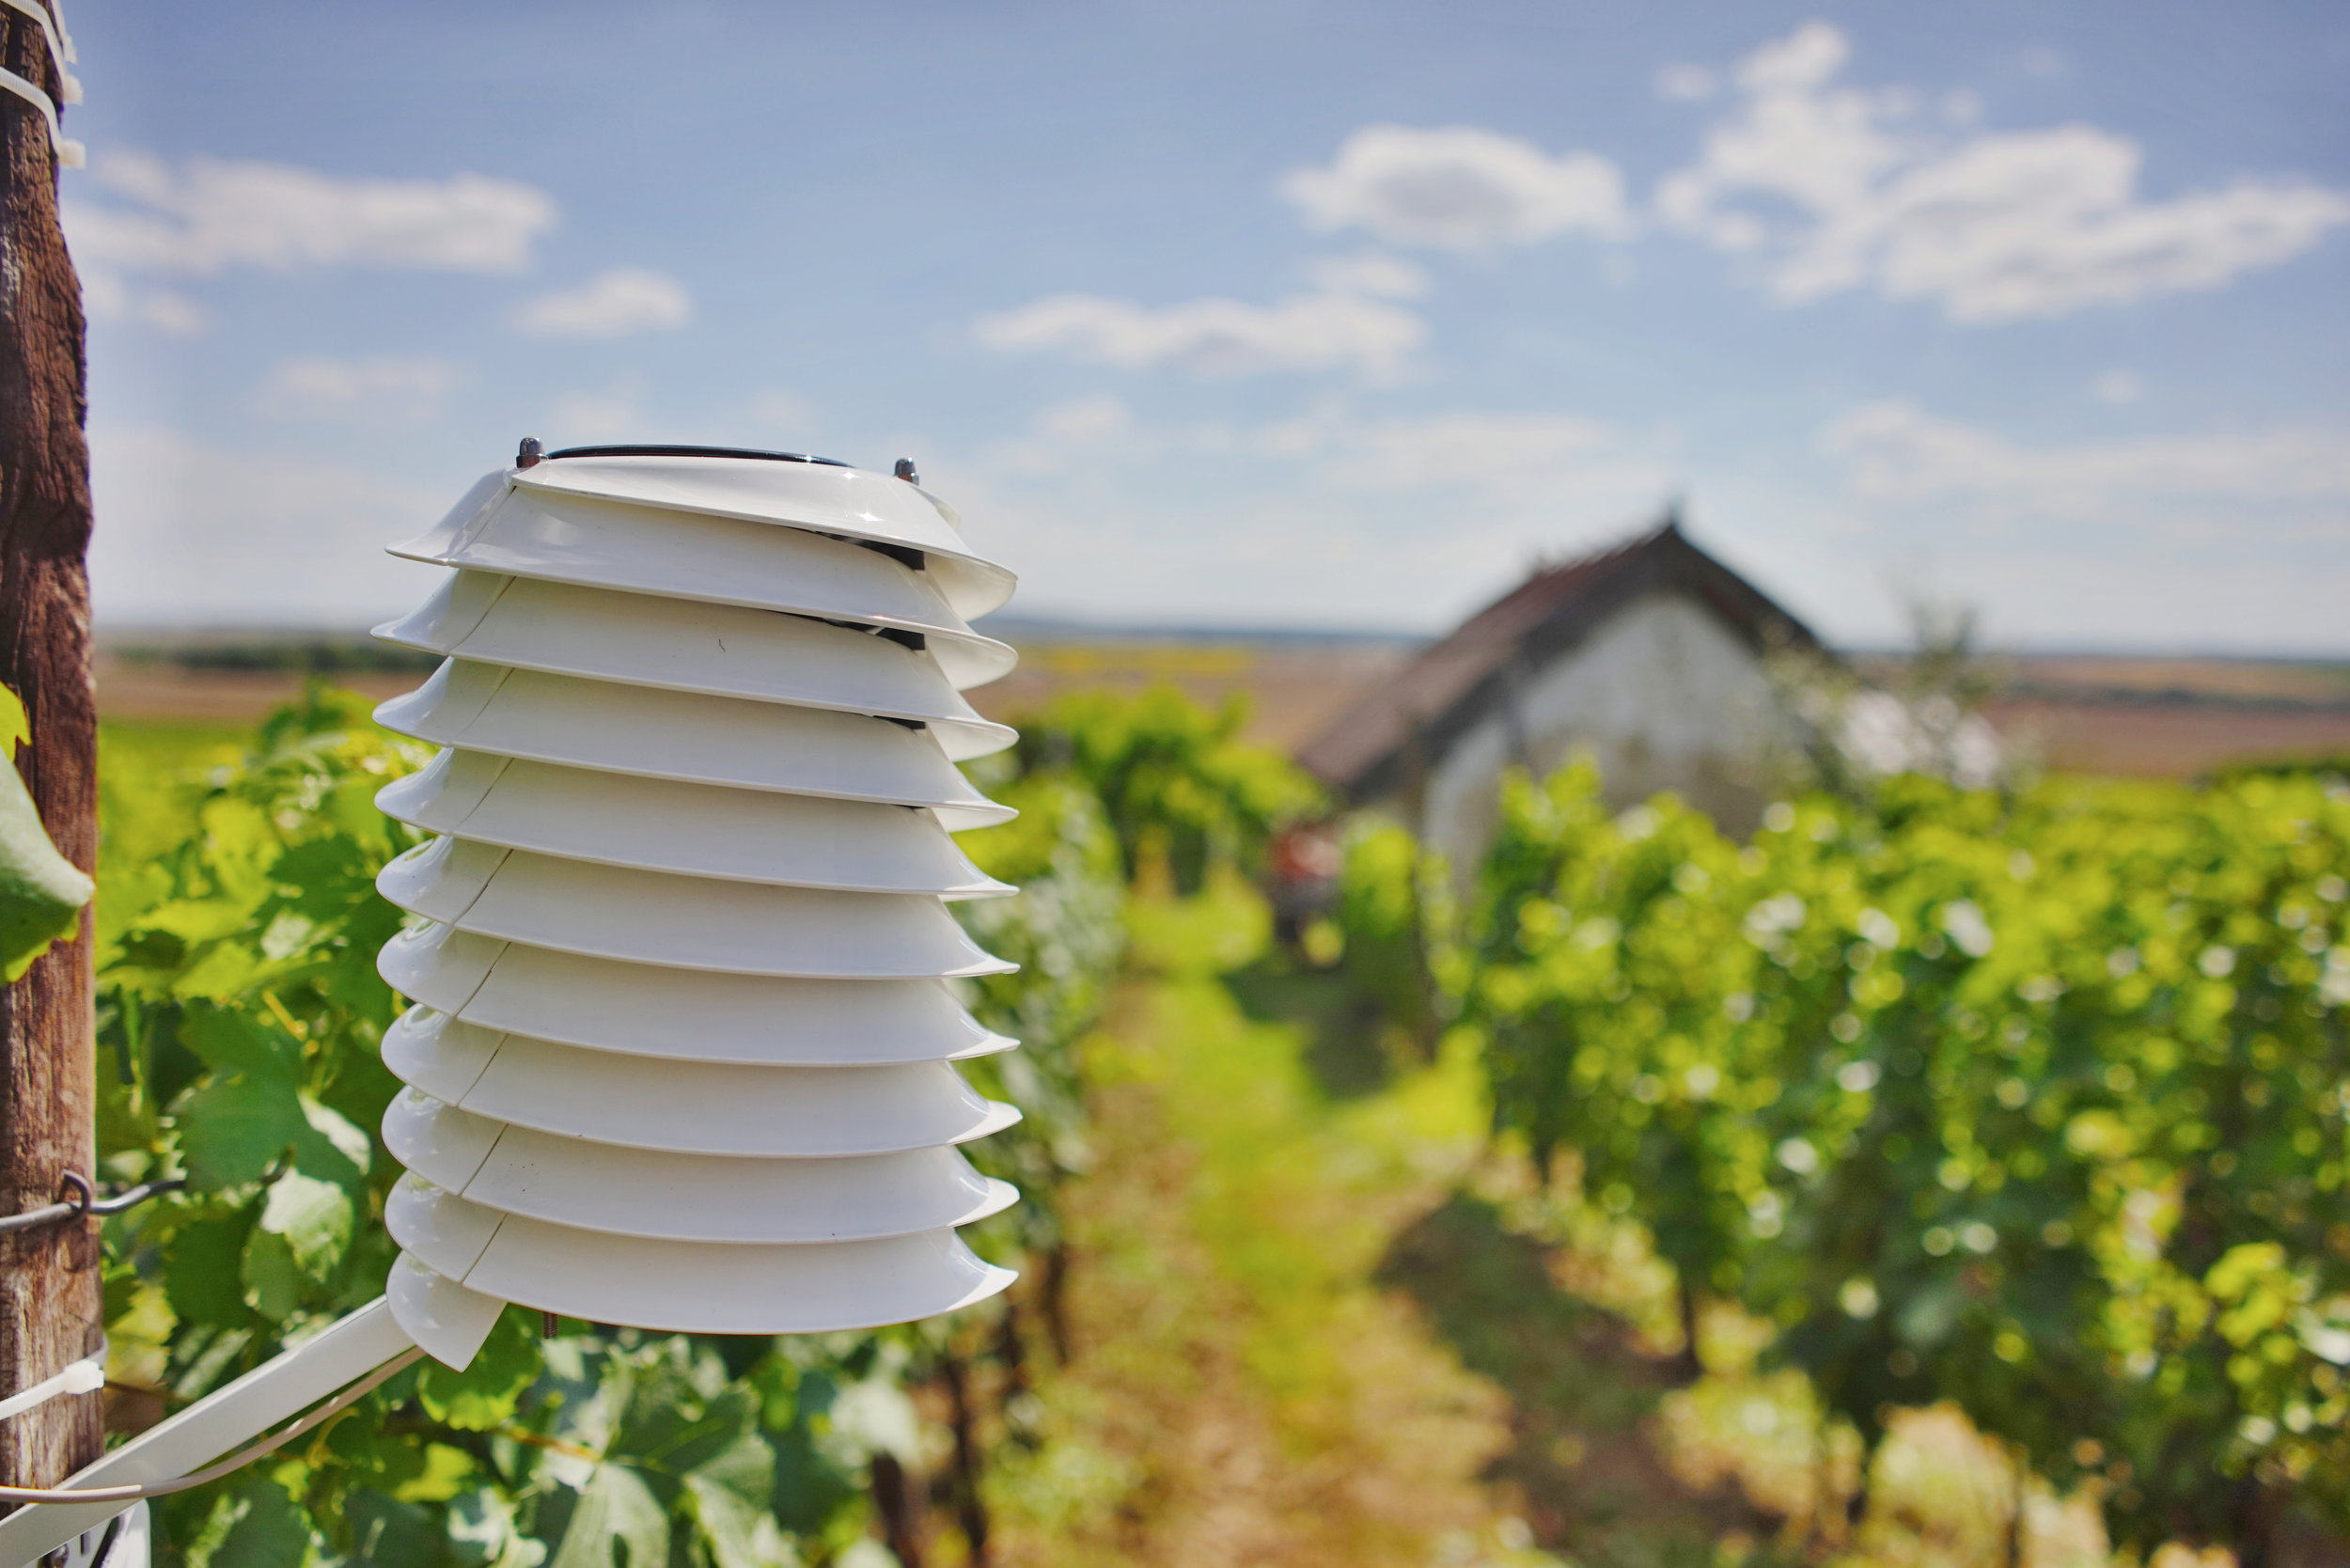 Weather station in a picturesque wine yard